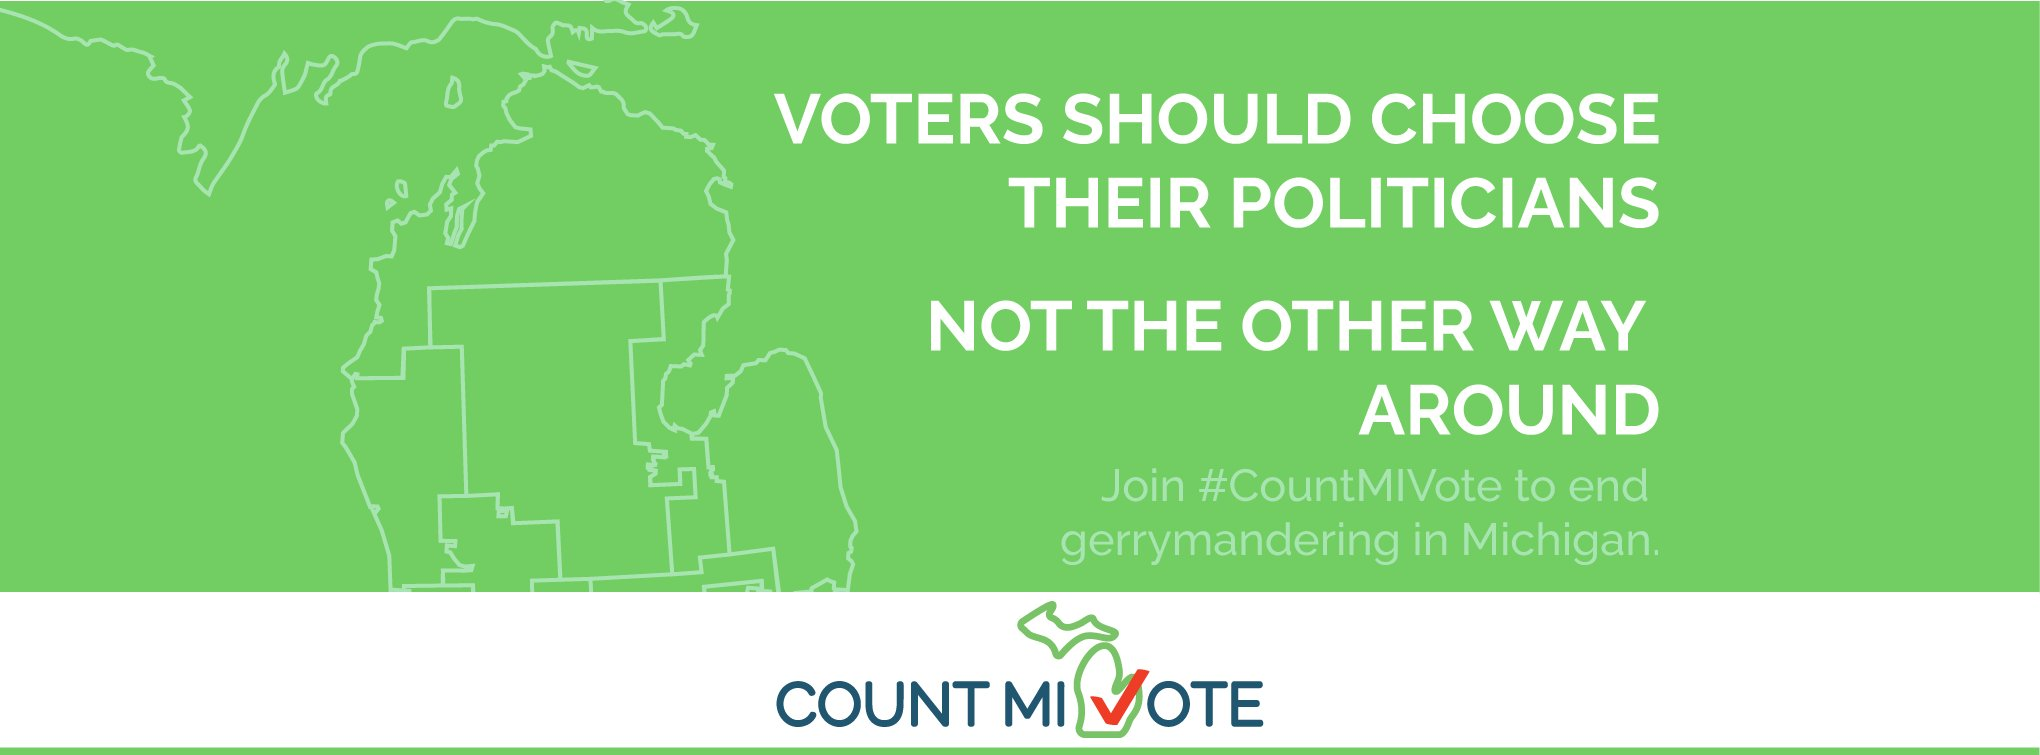 Who is Count MI Vote, and what are we working toward? https://t.co/Npdk6yy0zK https://t.co/uPl1Y5cytN